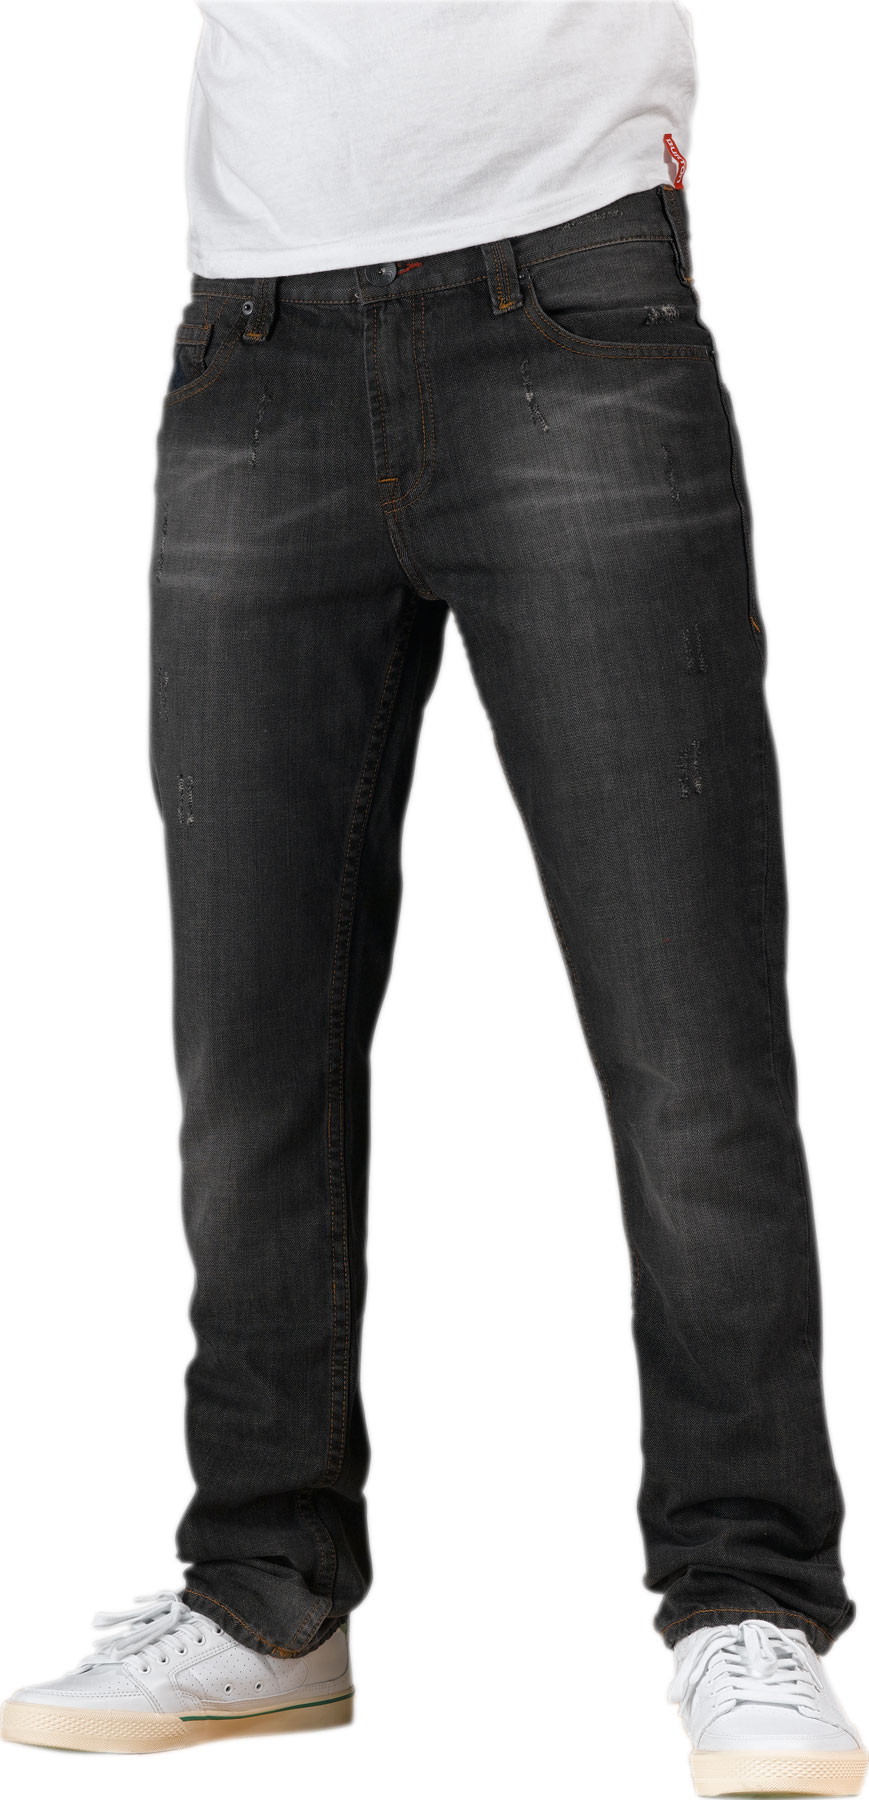 "Snowboard Add a pair of stylish Burton Mid Fit Jeans to your wardrobe. Whether you are out on the town with some friends, interviewing for a job, going out for dinner with a date, or lounging at home, these jeans are perfect for any situation with their classic straight leg, medium rise fit. 100% cotton means 100% comfort. The custom rivets and contrast stitching make these Mid Fit Jeans stand out. Pull off a clean, casual appearance with the coolest jeans in town: the Burton Mid Fit!Key Features of the Burton Mid Fit Jeans: 100% Cotton 11.25oz. Denim Twill Pant Medium Rise Straight Leg 15.5"" Leg Opening Custom Rivets and Shanks Mountain Logo Stitch Detail on Back Pocket Logo Embroidery at Coin Pocket Contrast Stitching Zip Fly - $25.95"